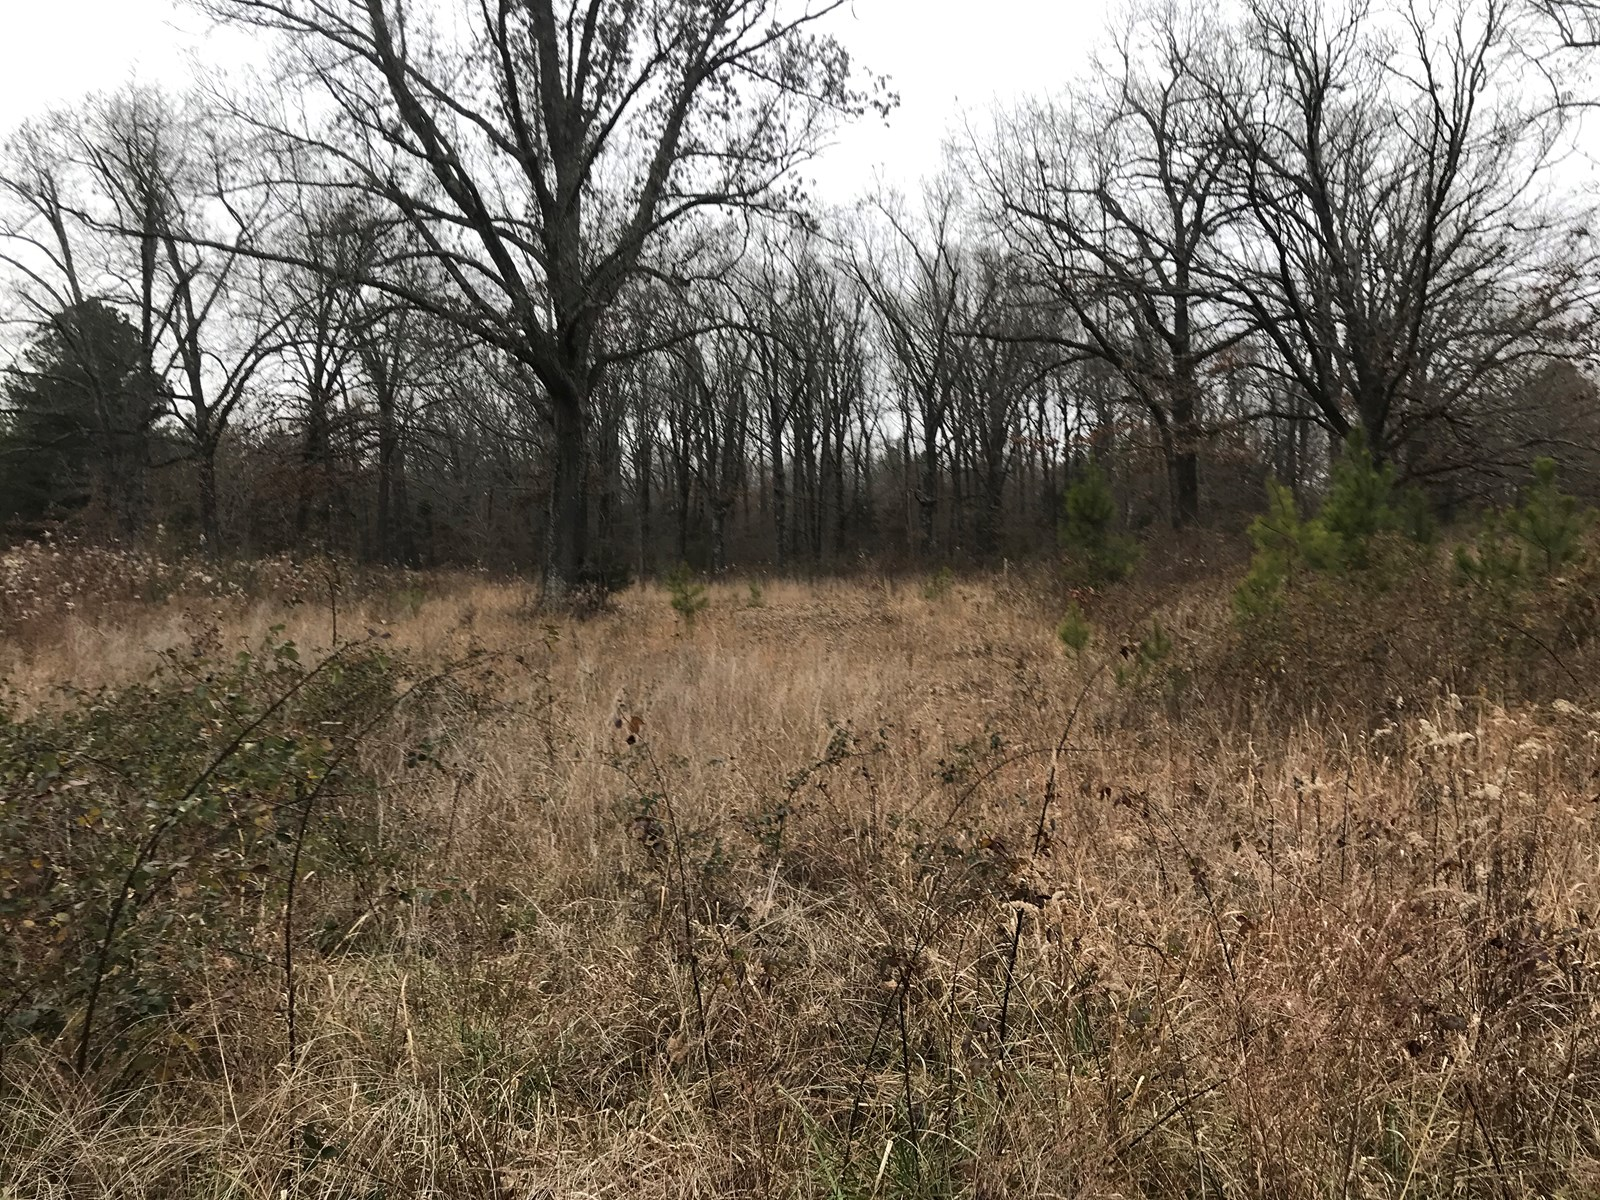 Land (lots) for sale in Pocahontas, Arkansas Home building